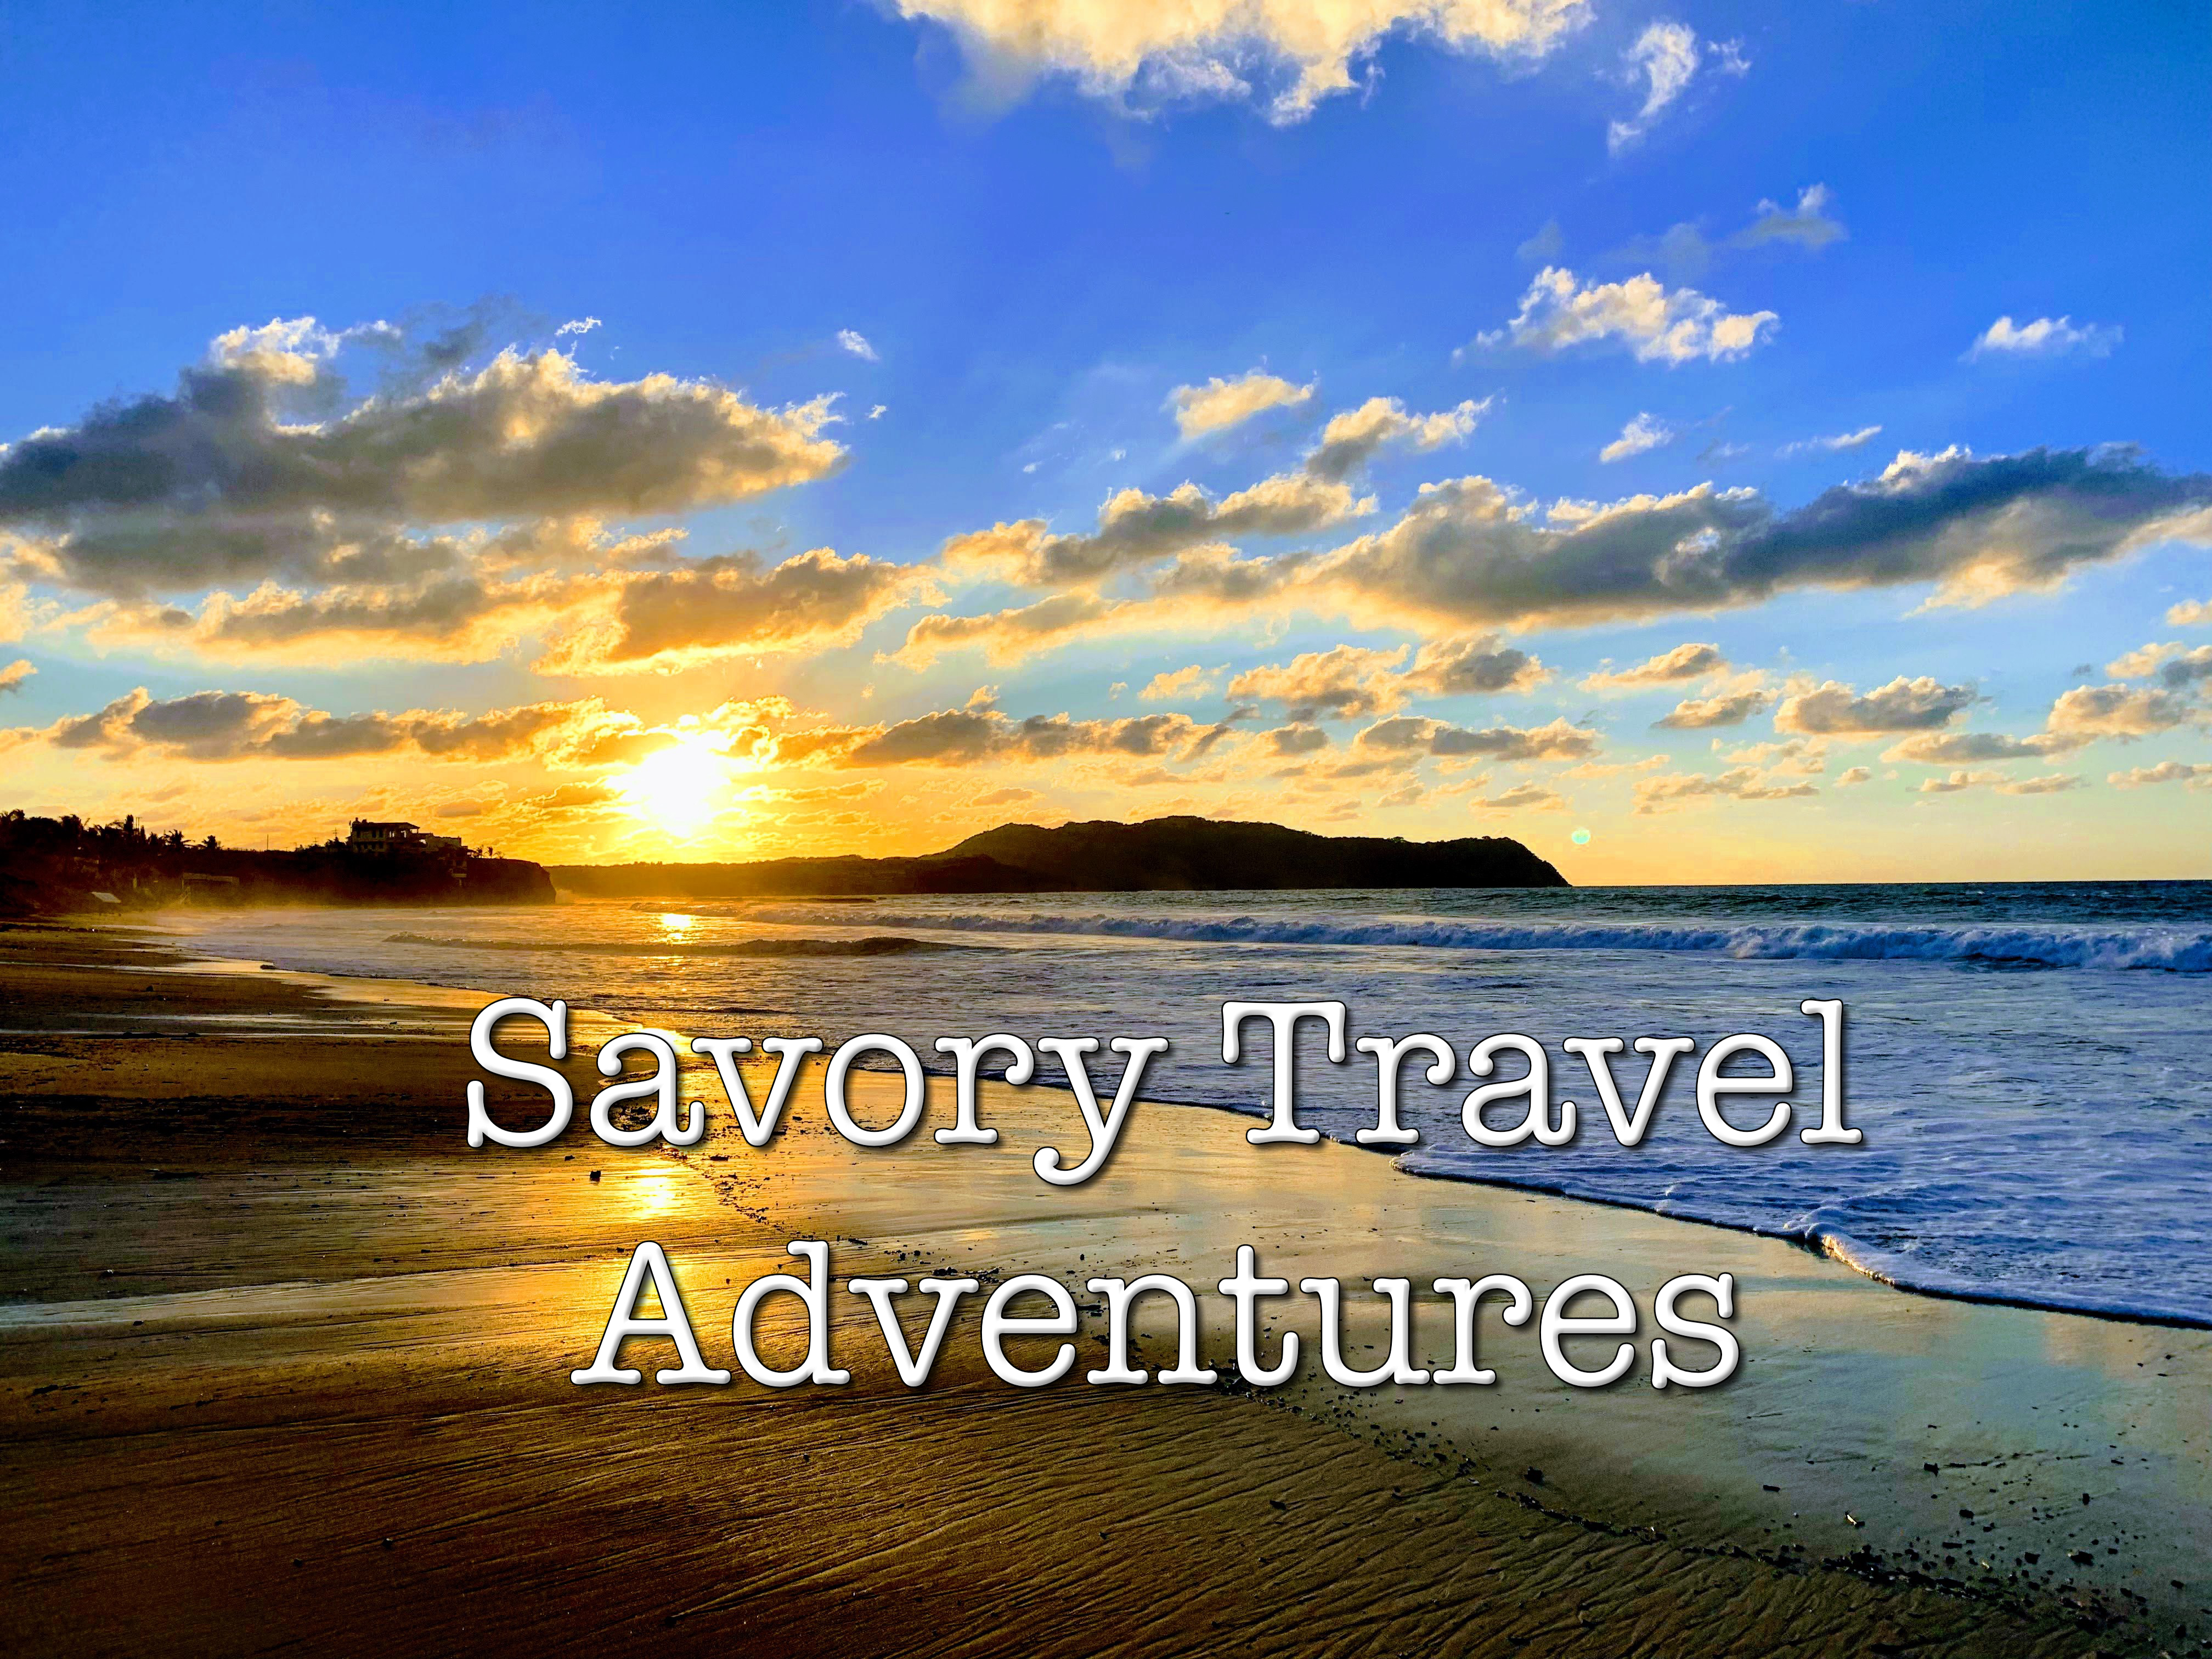 Savory Travel Adventures by Steven Shomler